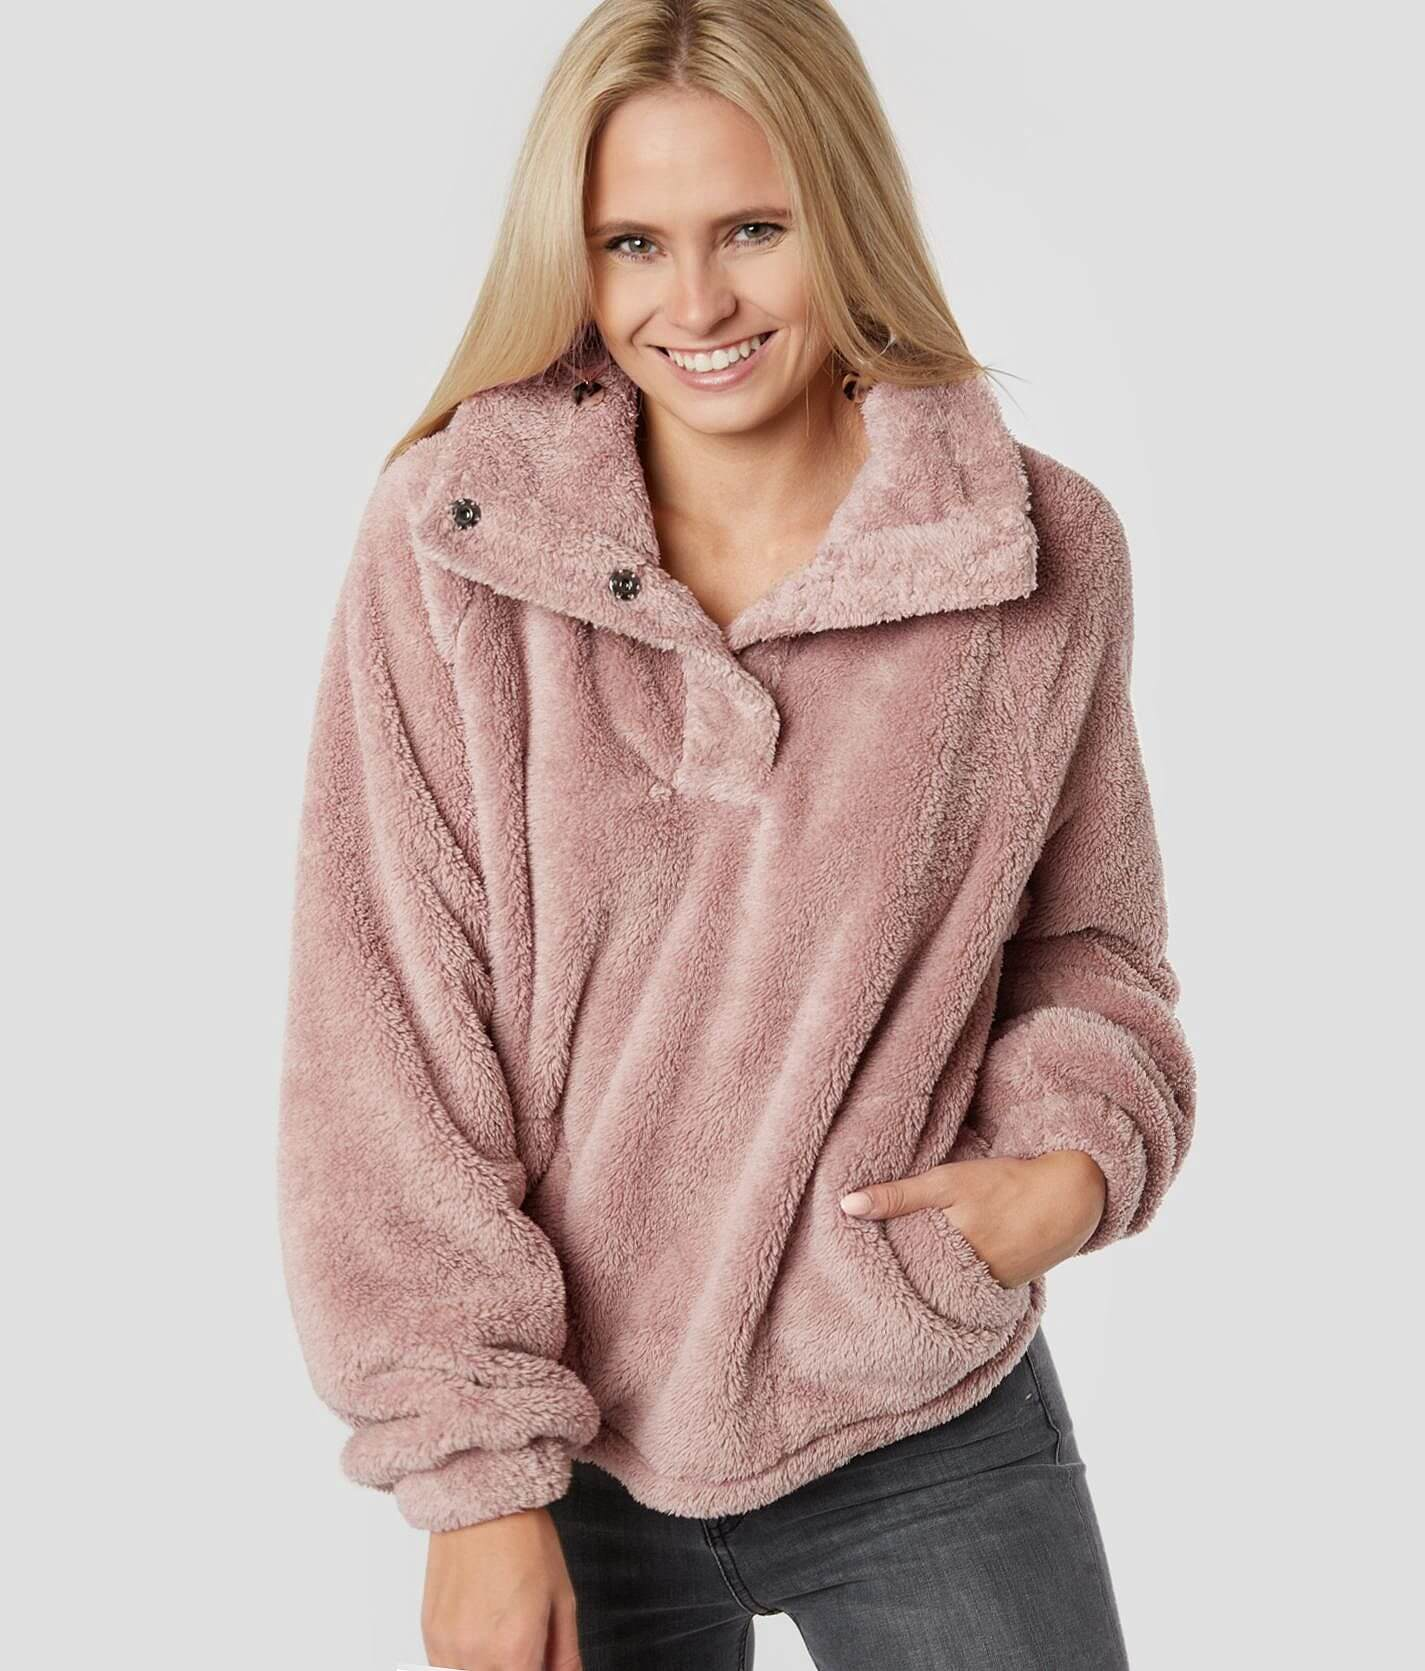 Warm Times Sherpa Pullover by Billabong